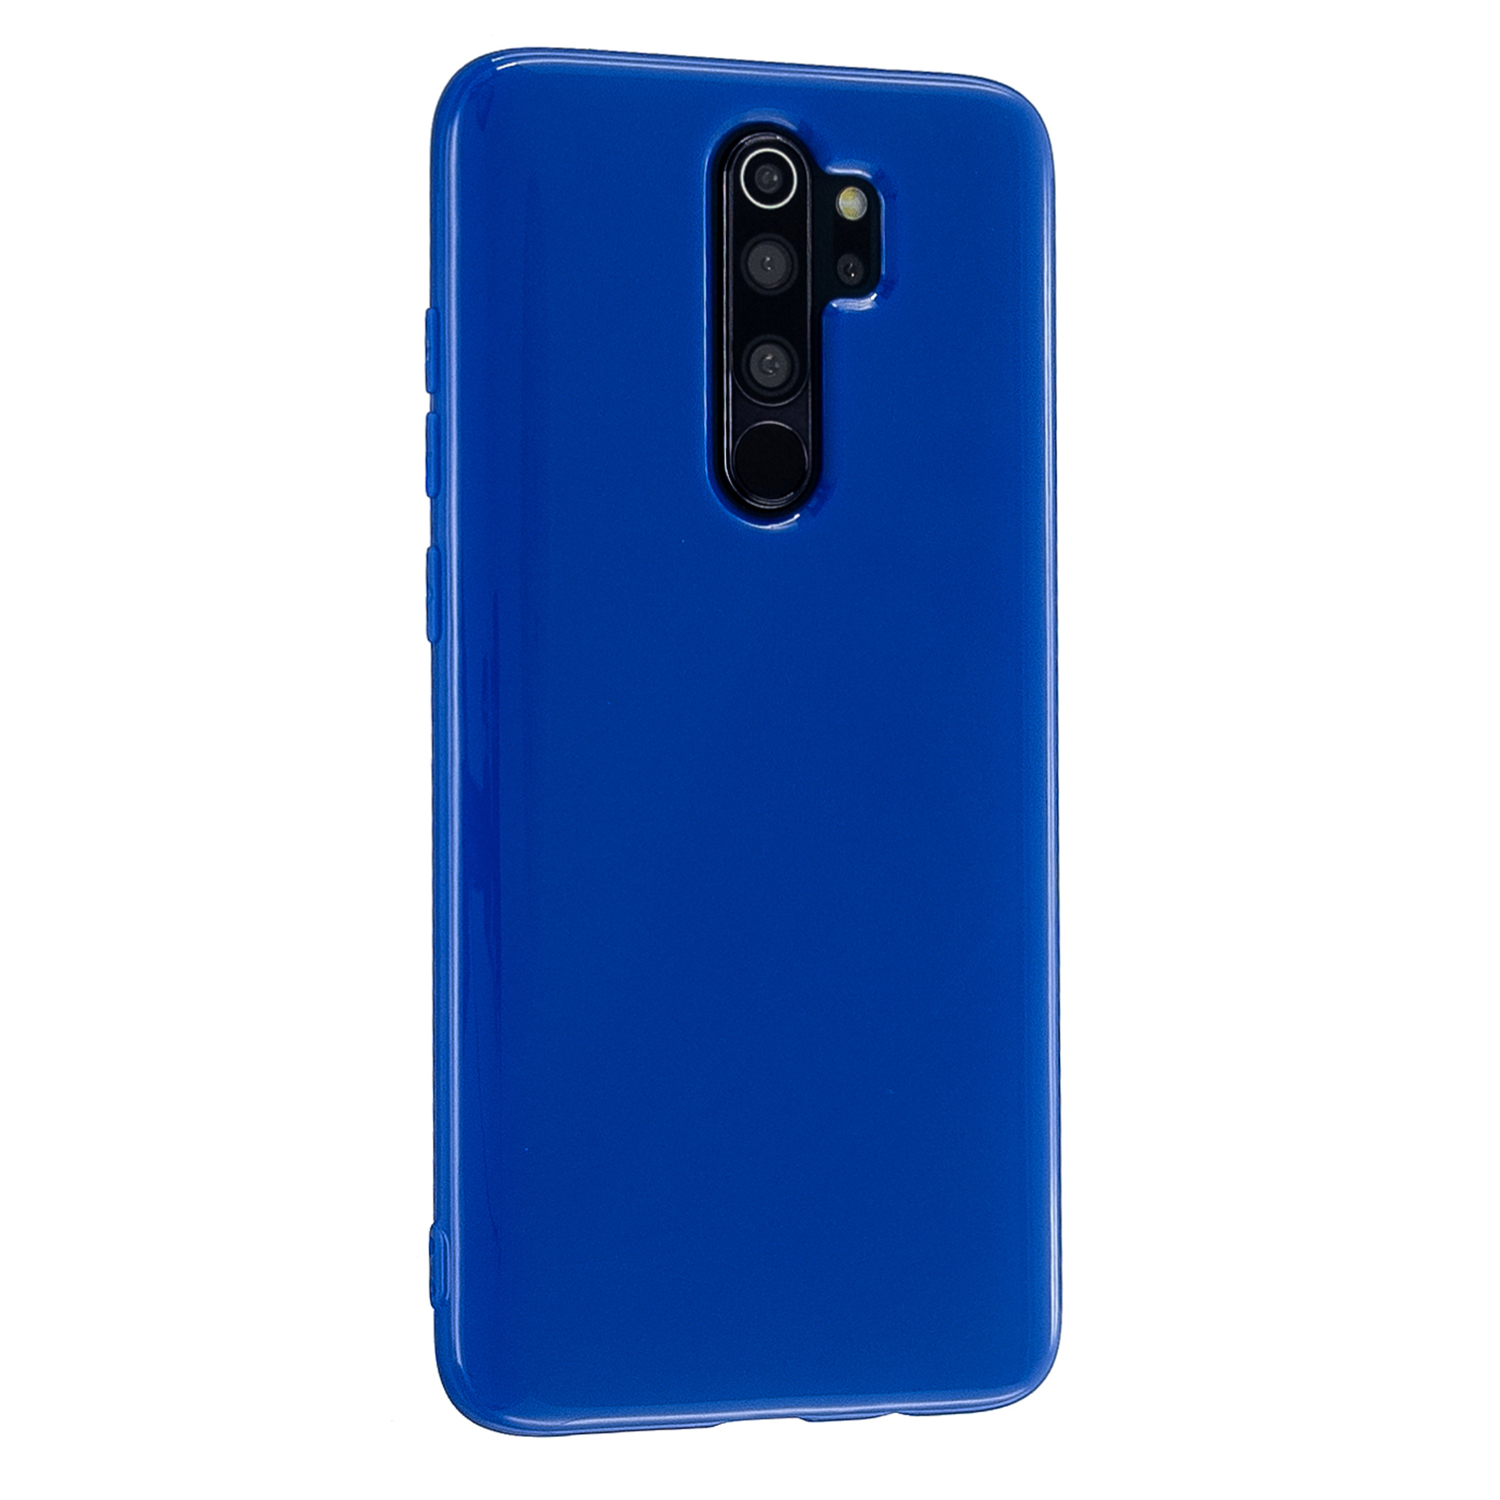 For Redmi Note 8/8 Pro Cellphone Cover 2.0mm Thickened TPU Case Camera Protector Anti-Scratch Soft Phone Shell Navy blue